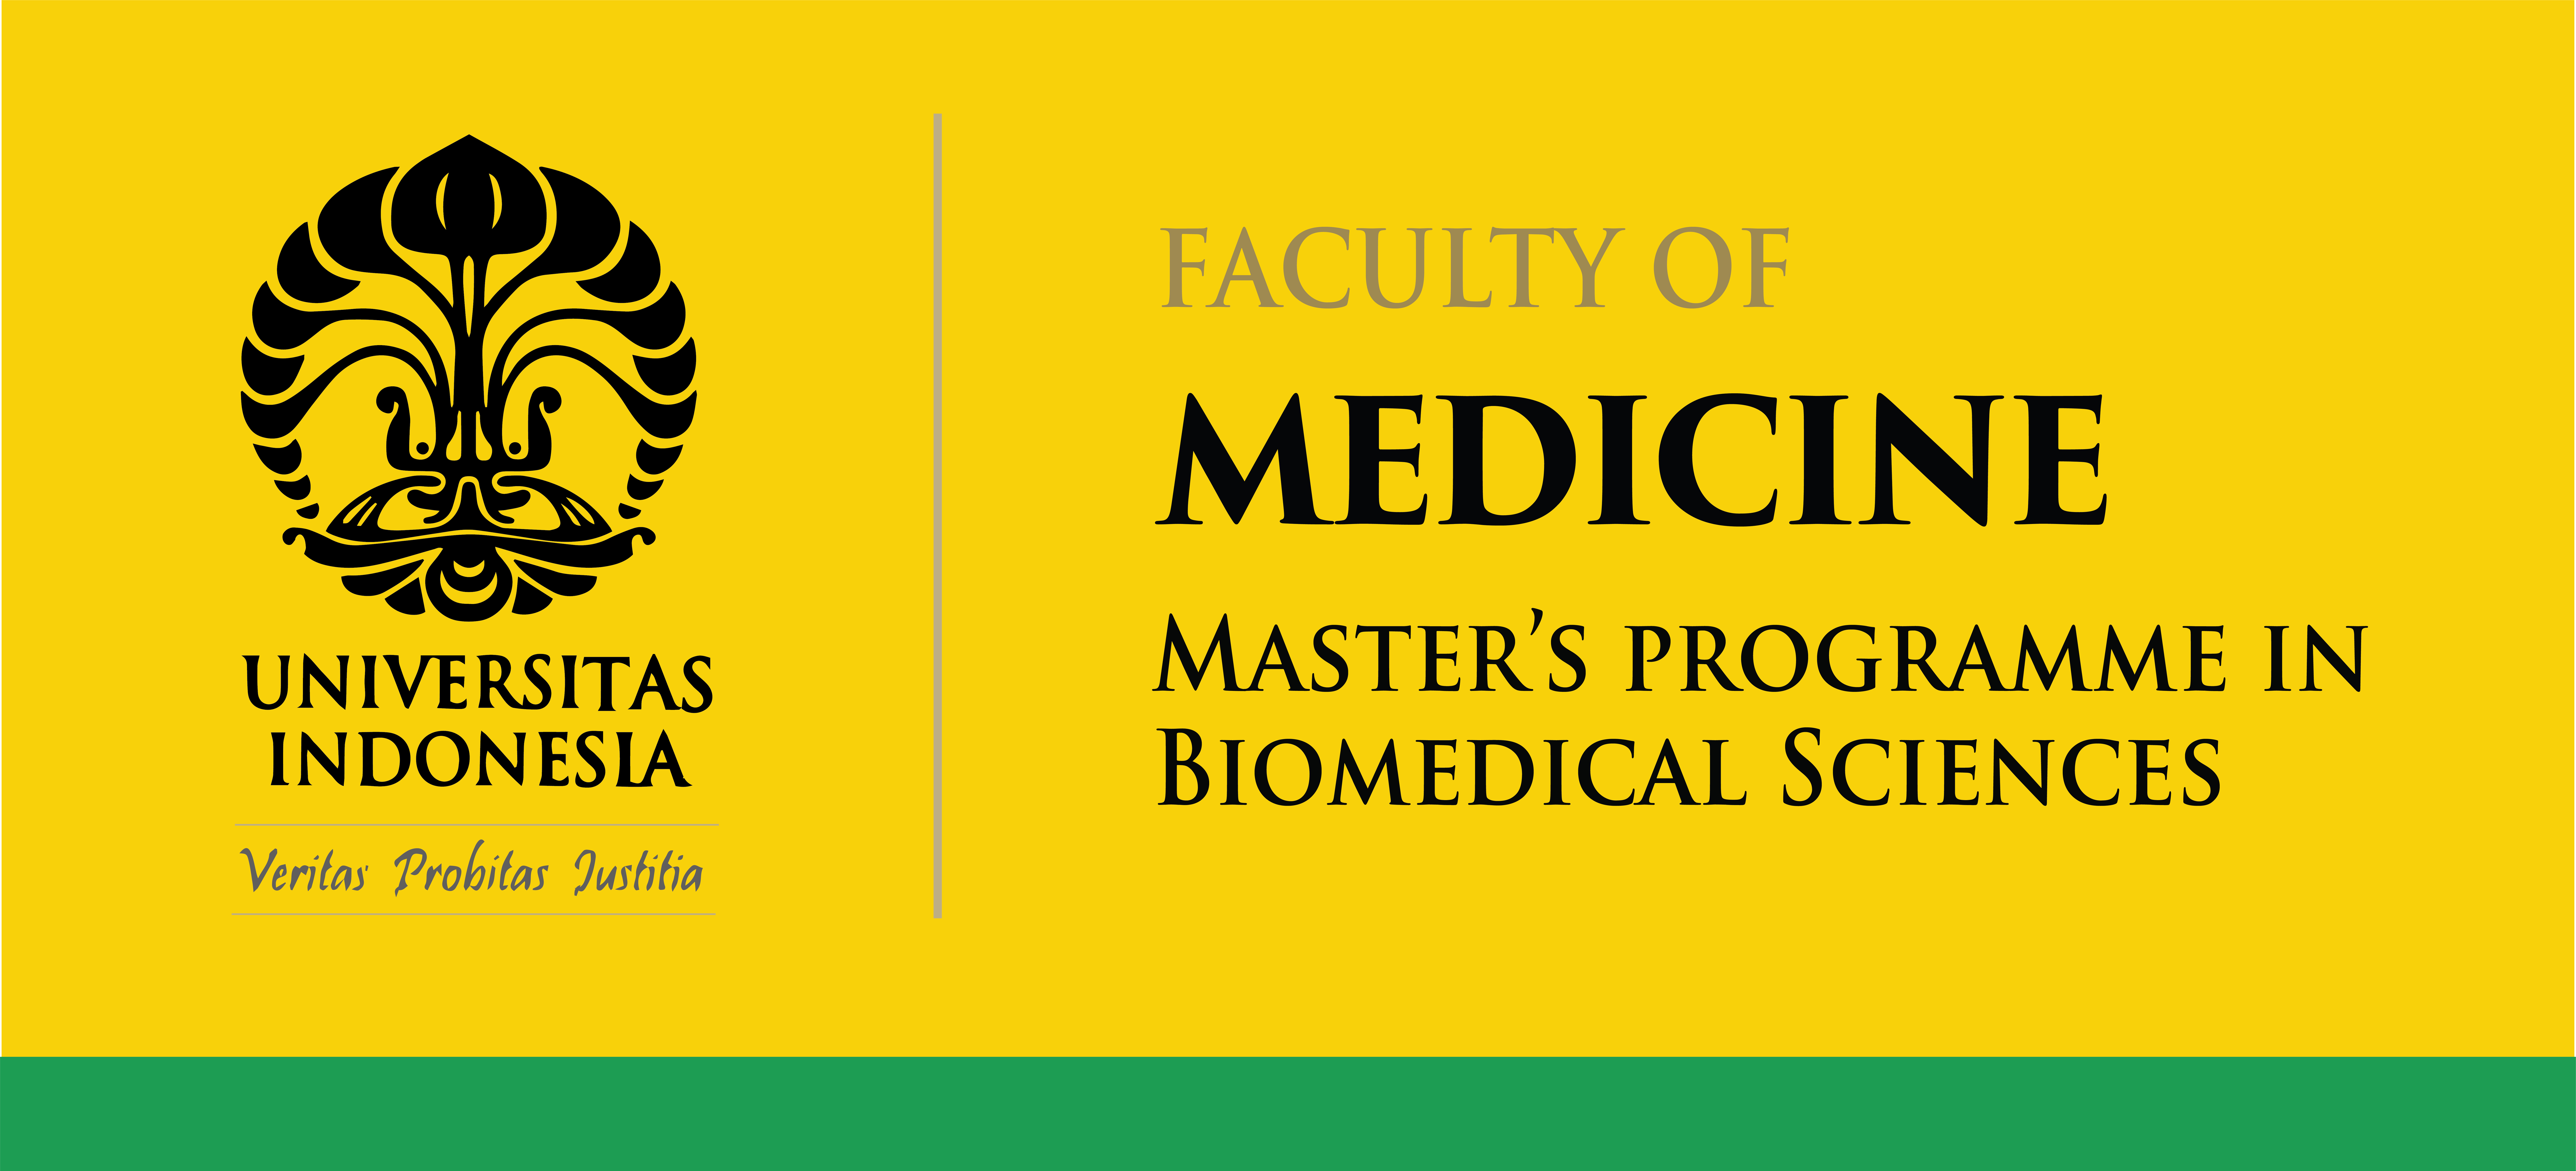 Master's Programme in Biomedical Sciences FMUI